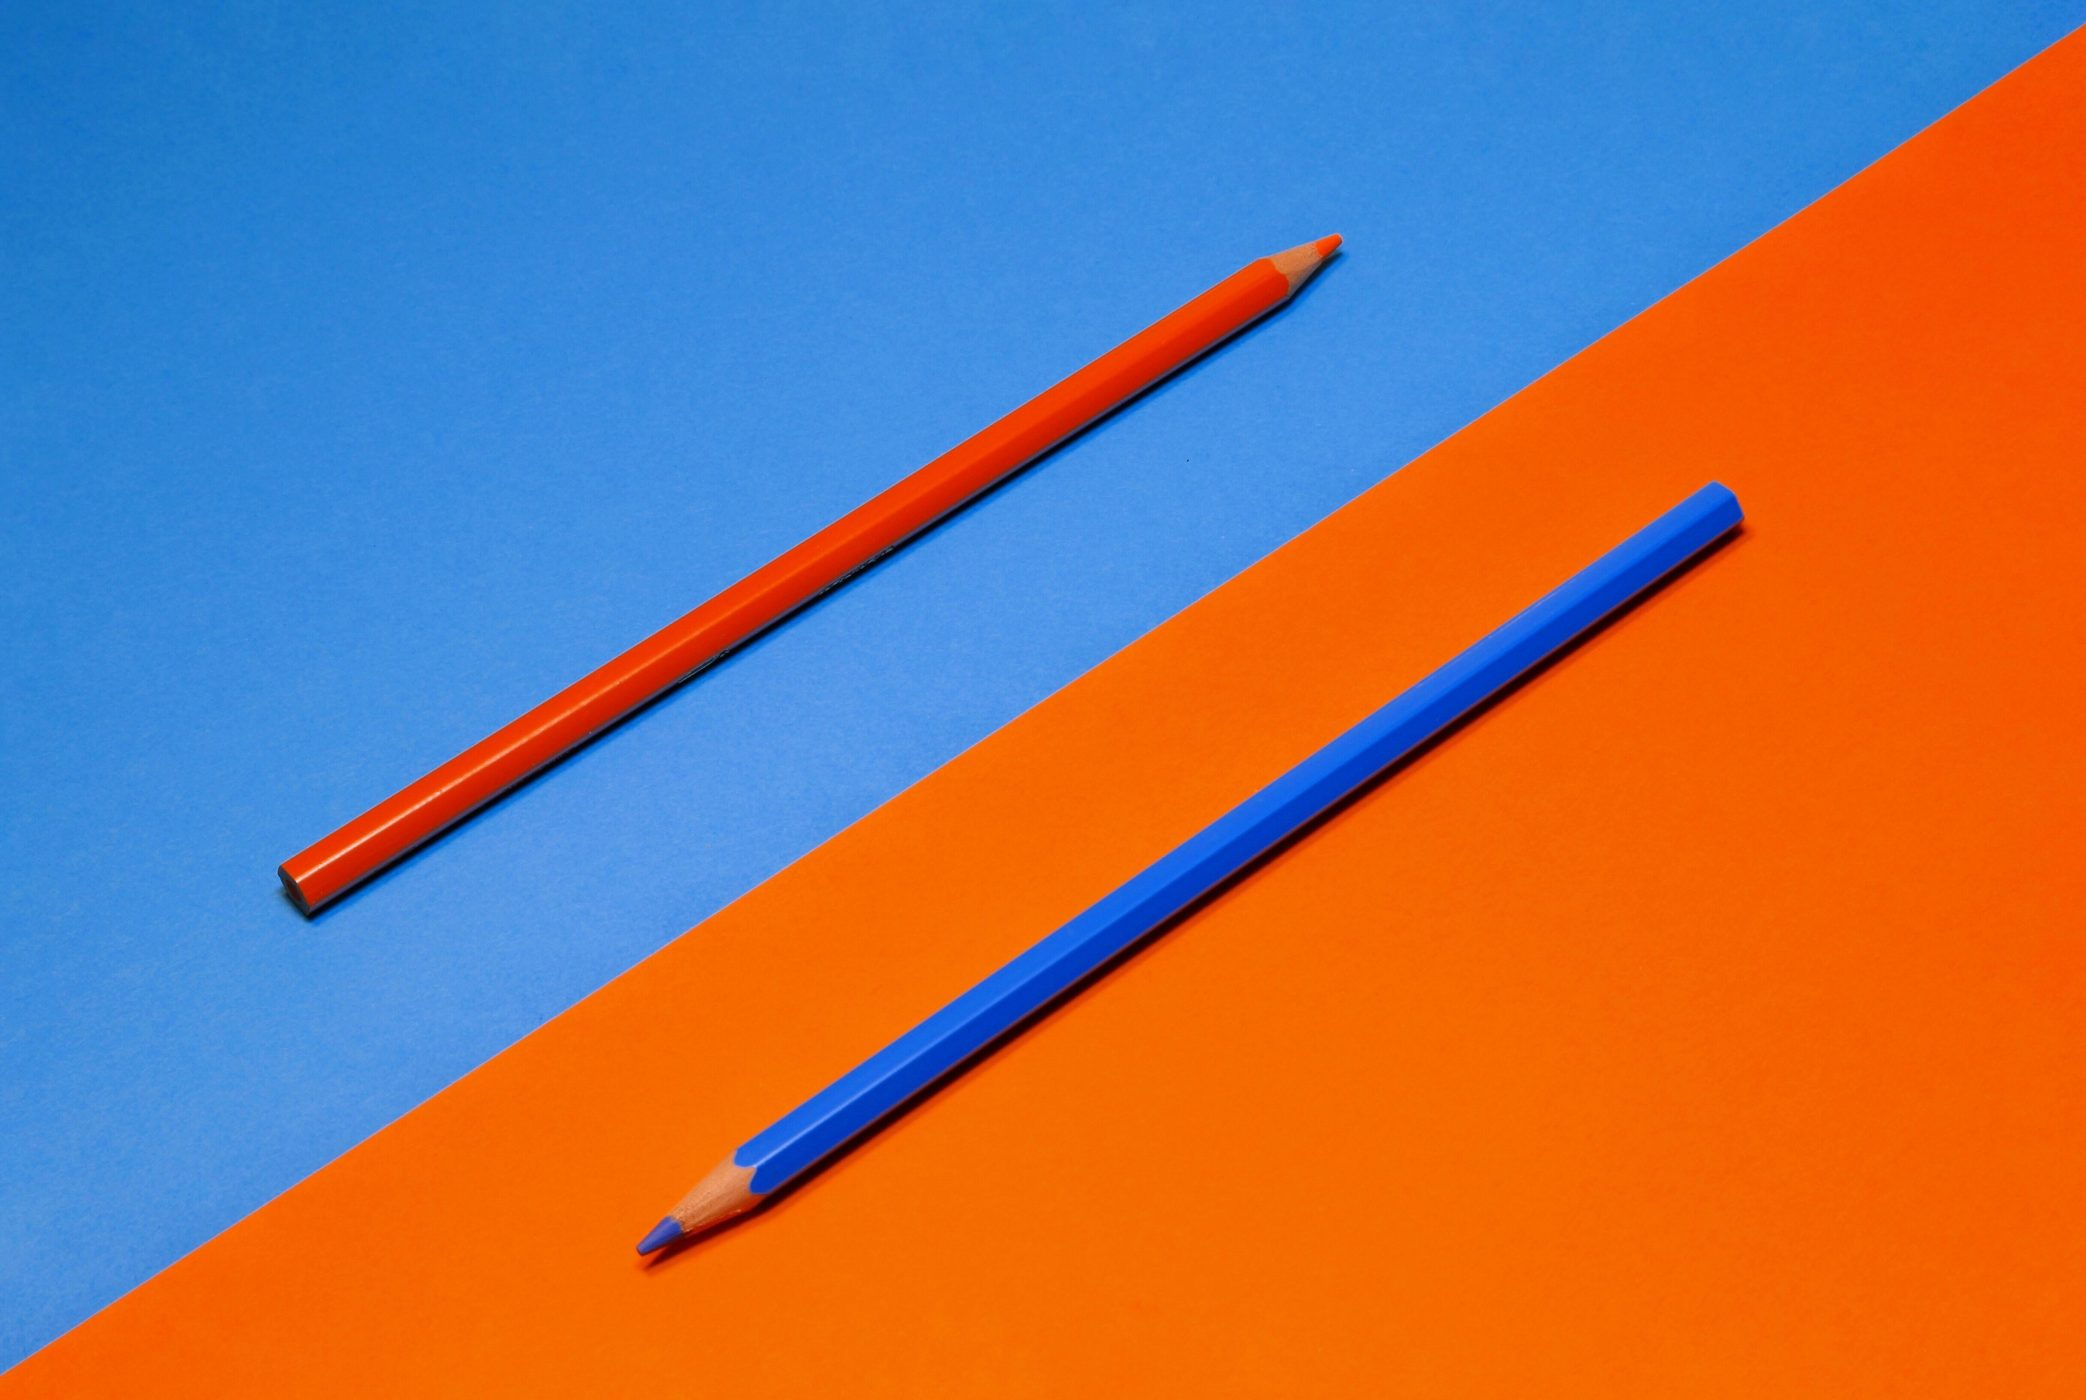 a blue triangle with an orange pencil resting in the center; an orange triangle with a blue pencil resting in the center. both pencils are at a 45-degree angle.